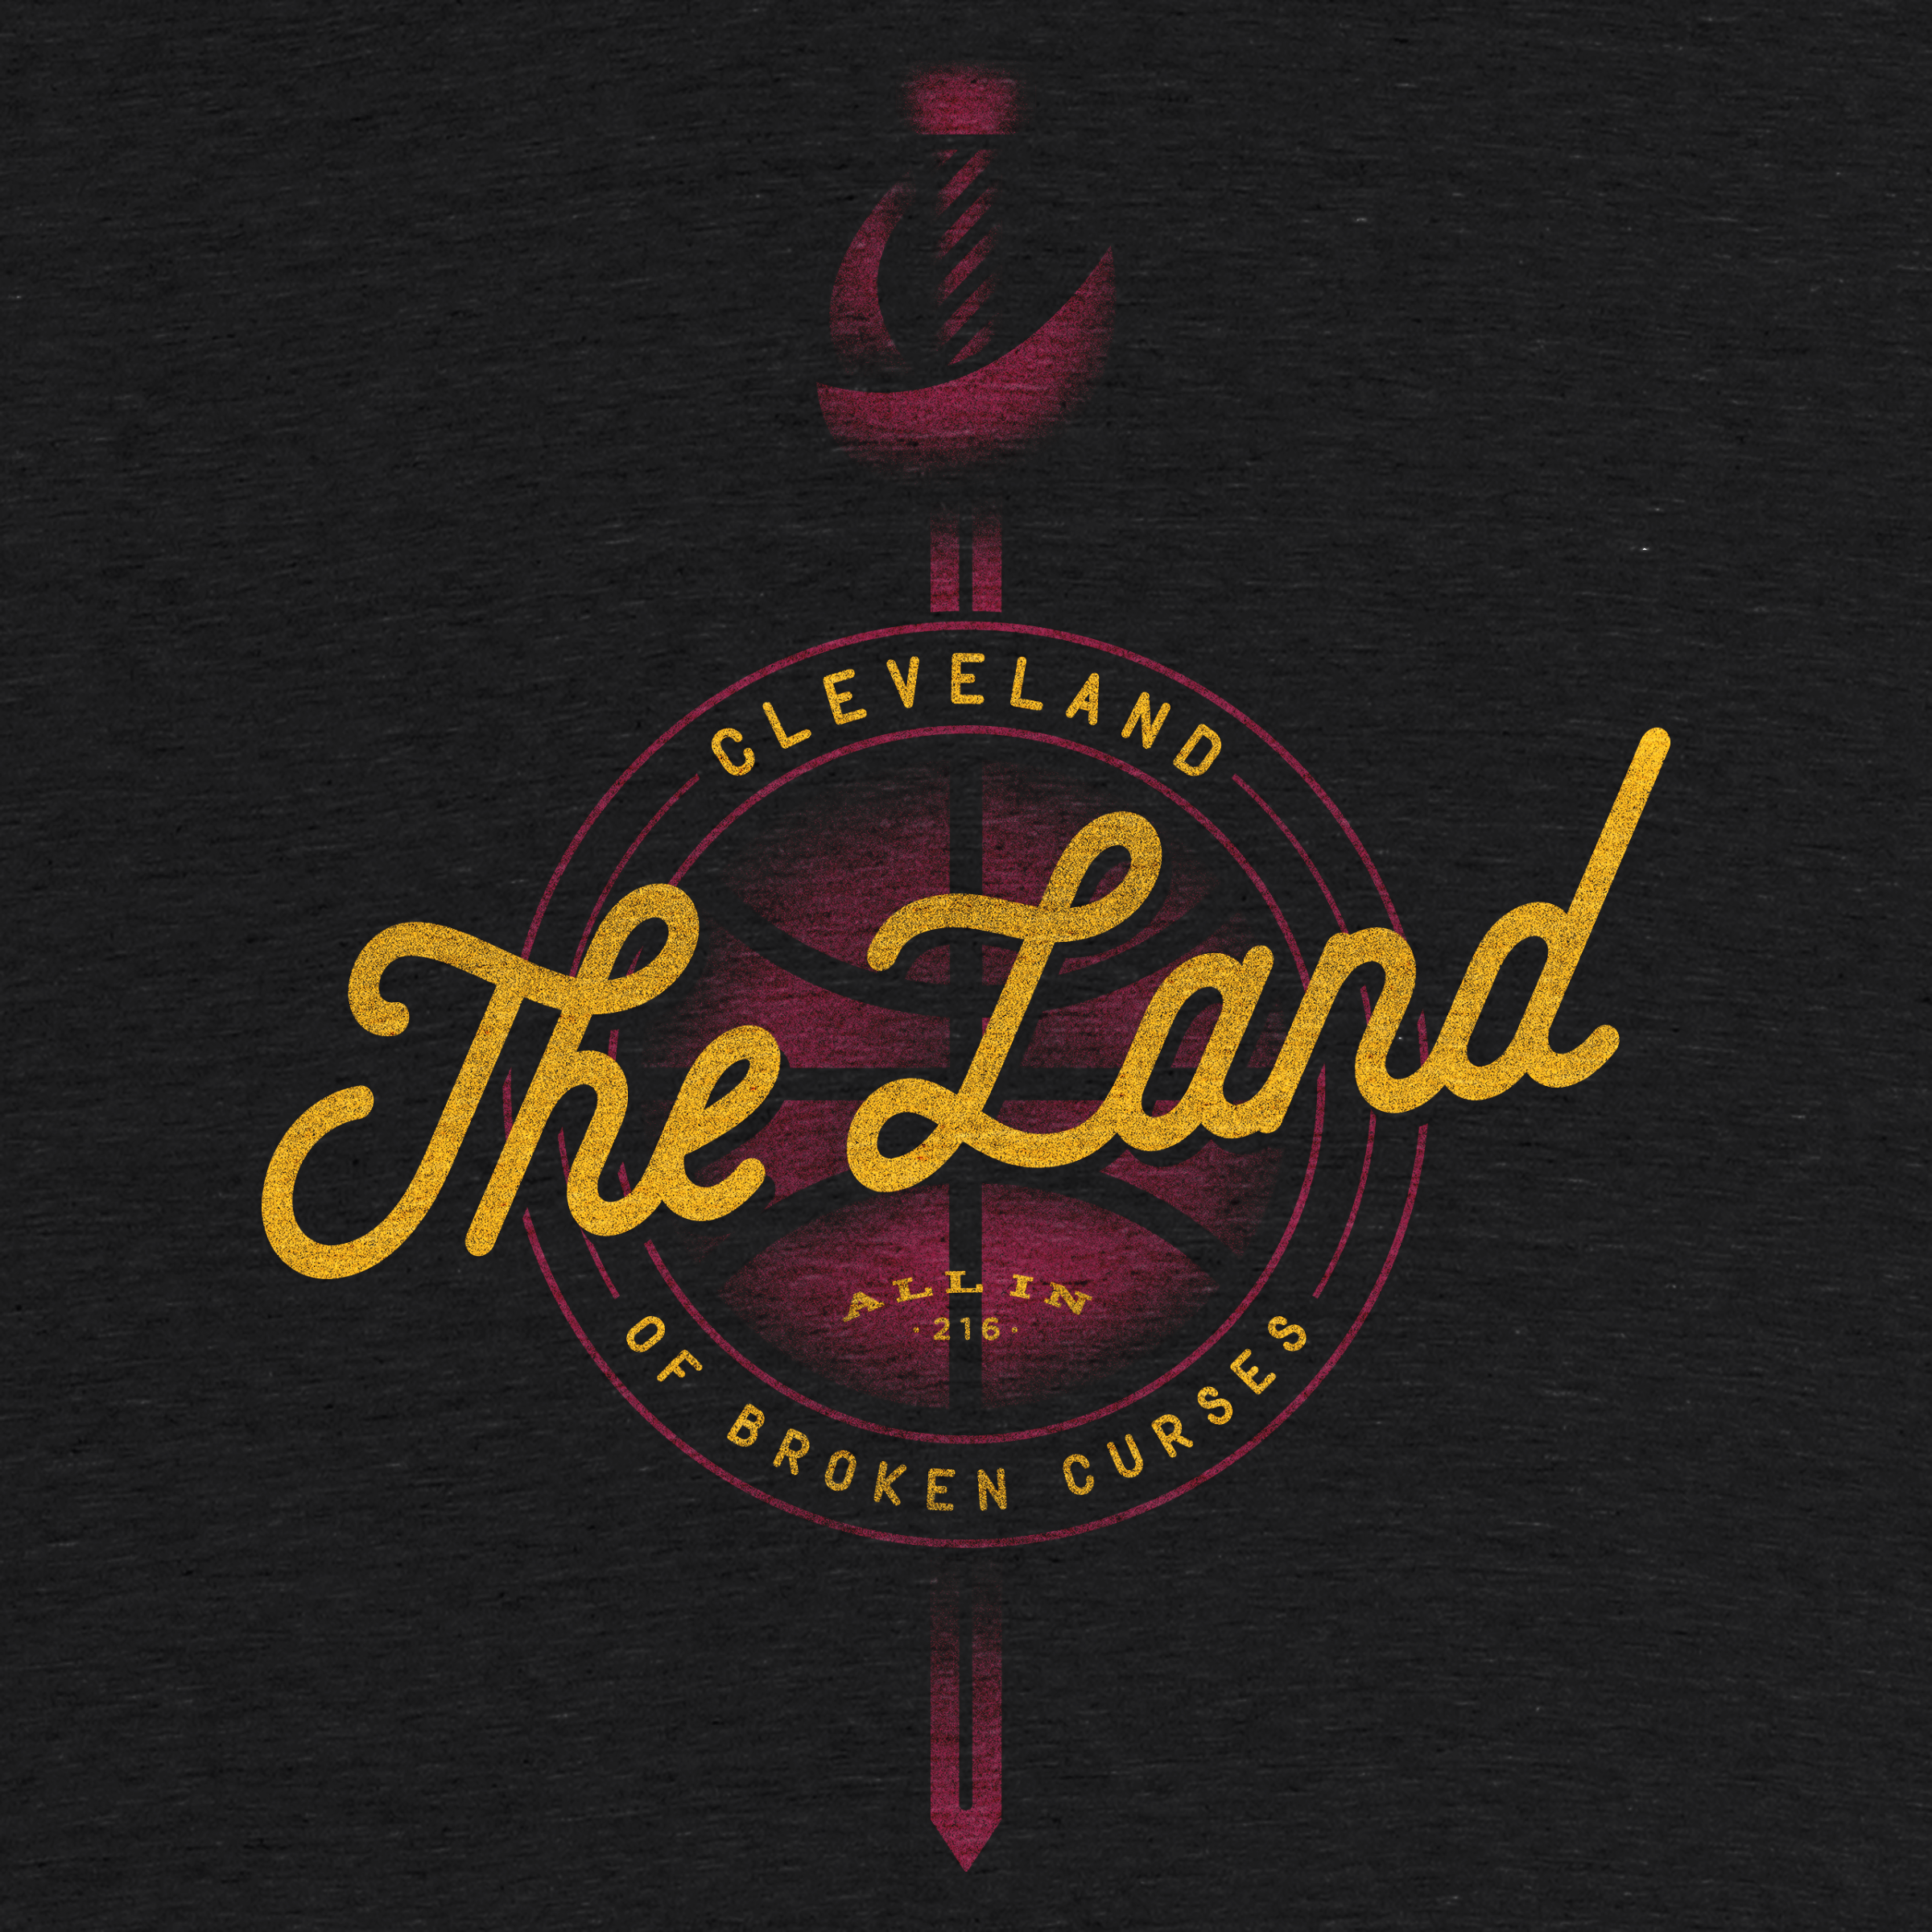 Cleveland: The Land of Broken Curses Detail